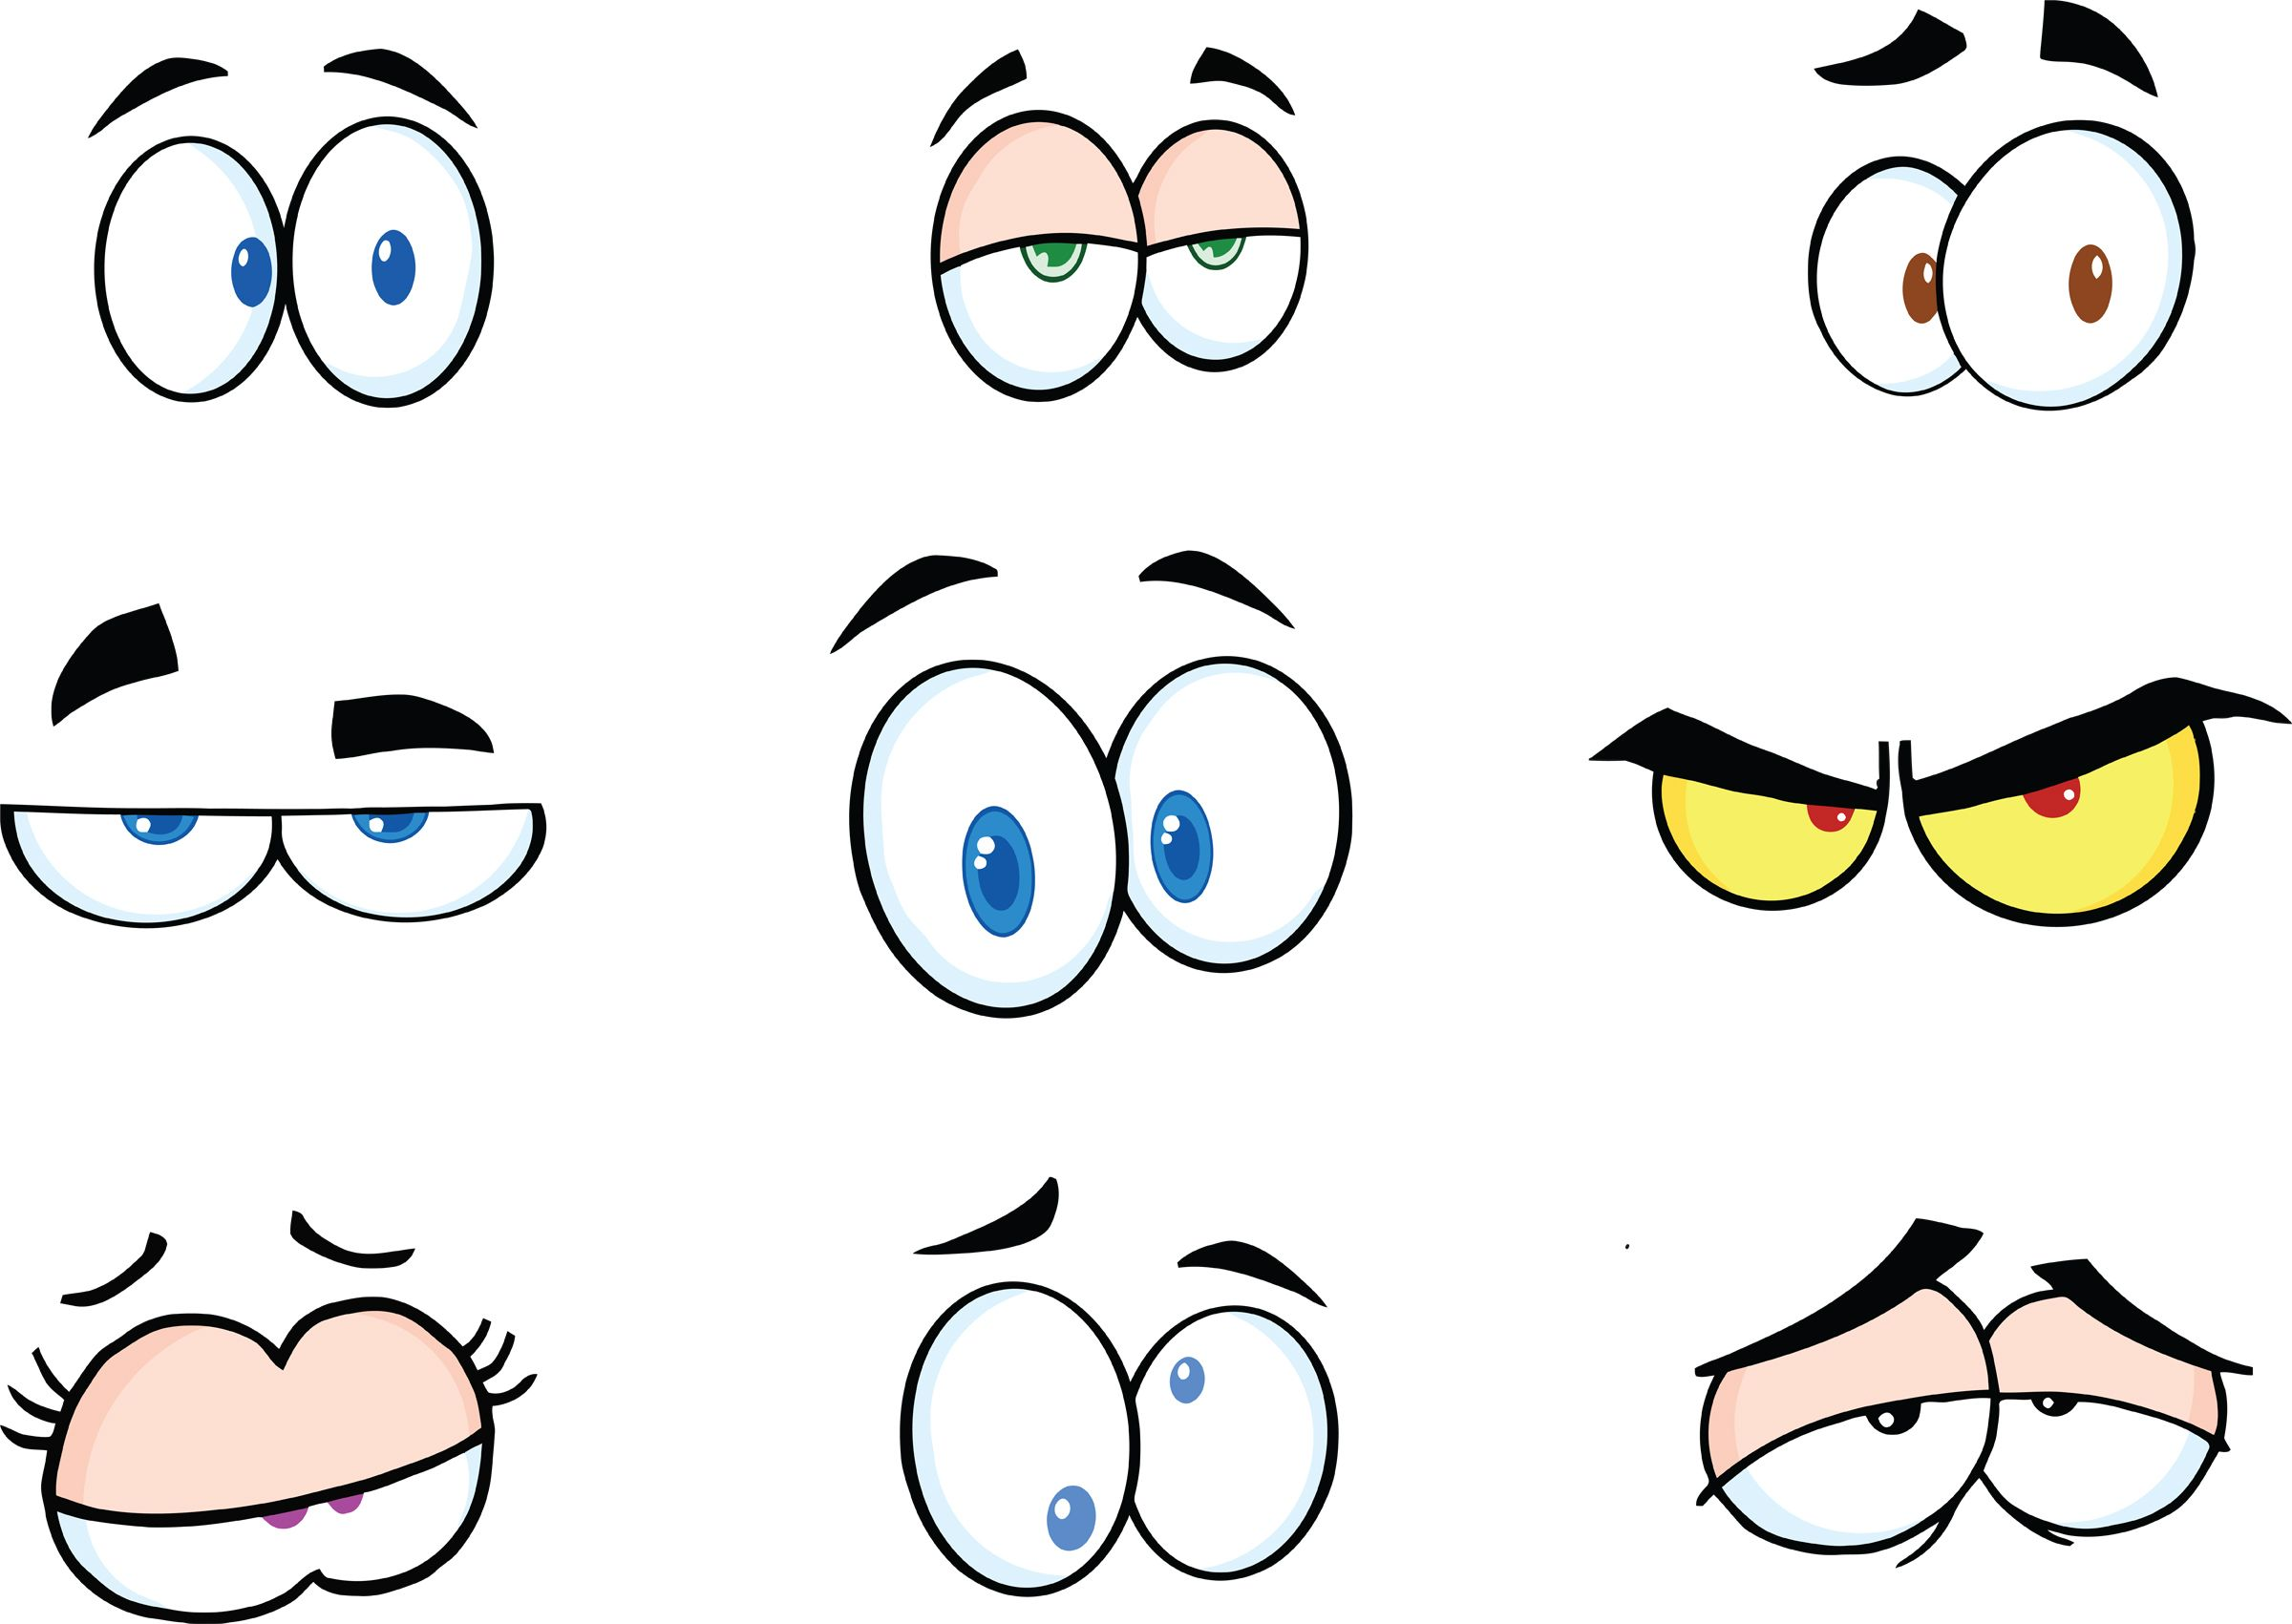 funny cartoon eyes clipart free clipart printables pinterest rh pinterest com eagle eye cartoon clipart cartoon eyes images clip art